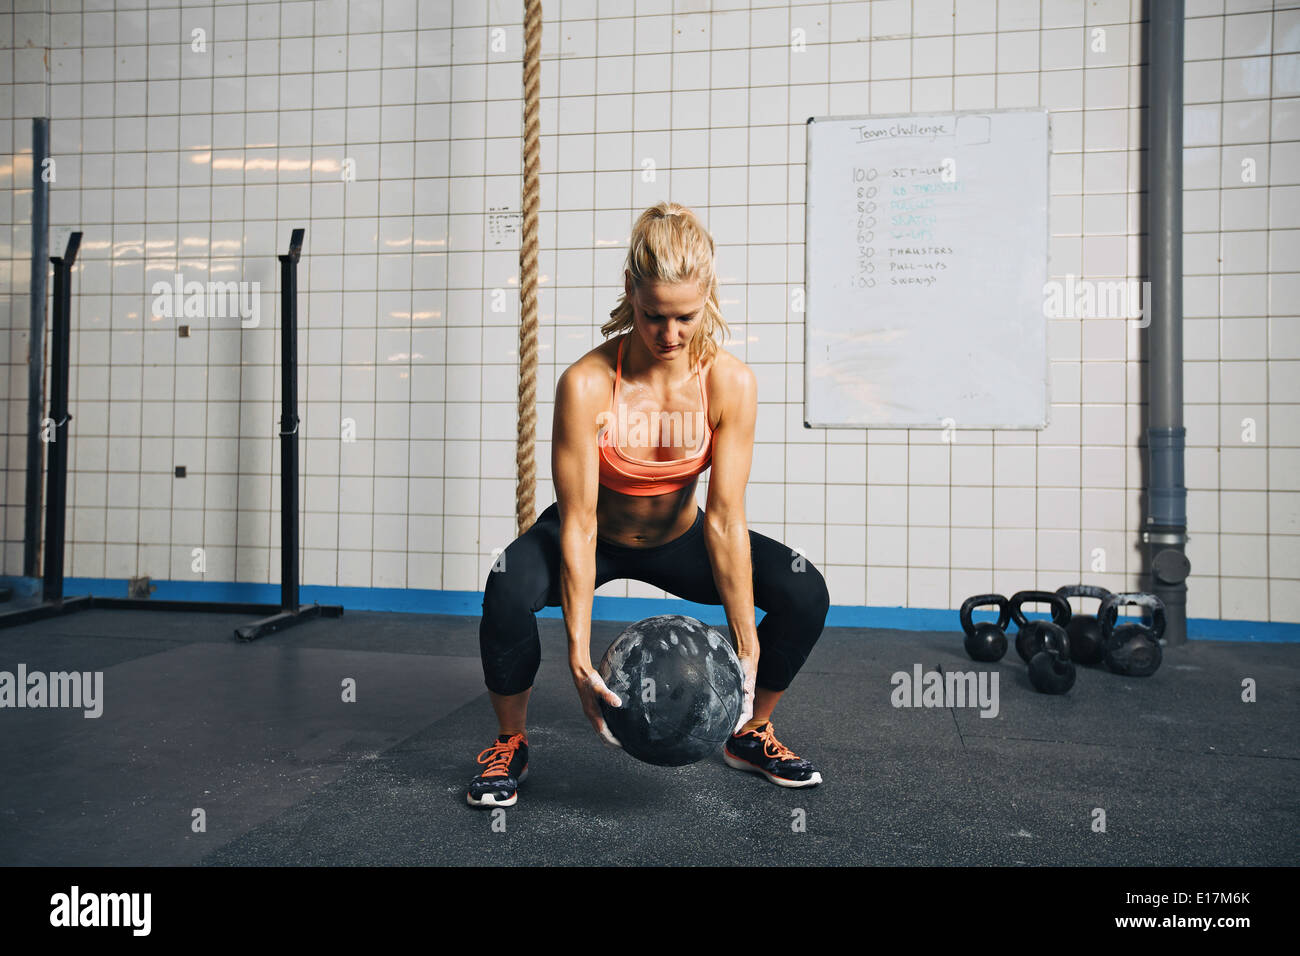 Fit and strong female athlete working out with a medicine ball to get better core strength and stability. Woman doing exercise. - Stock Image